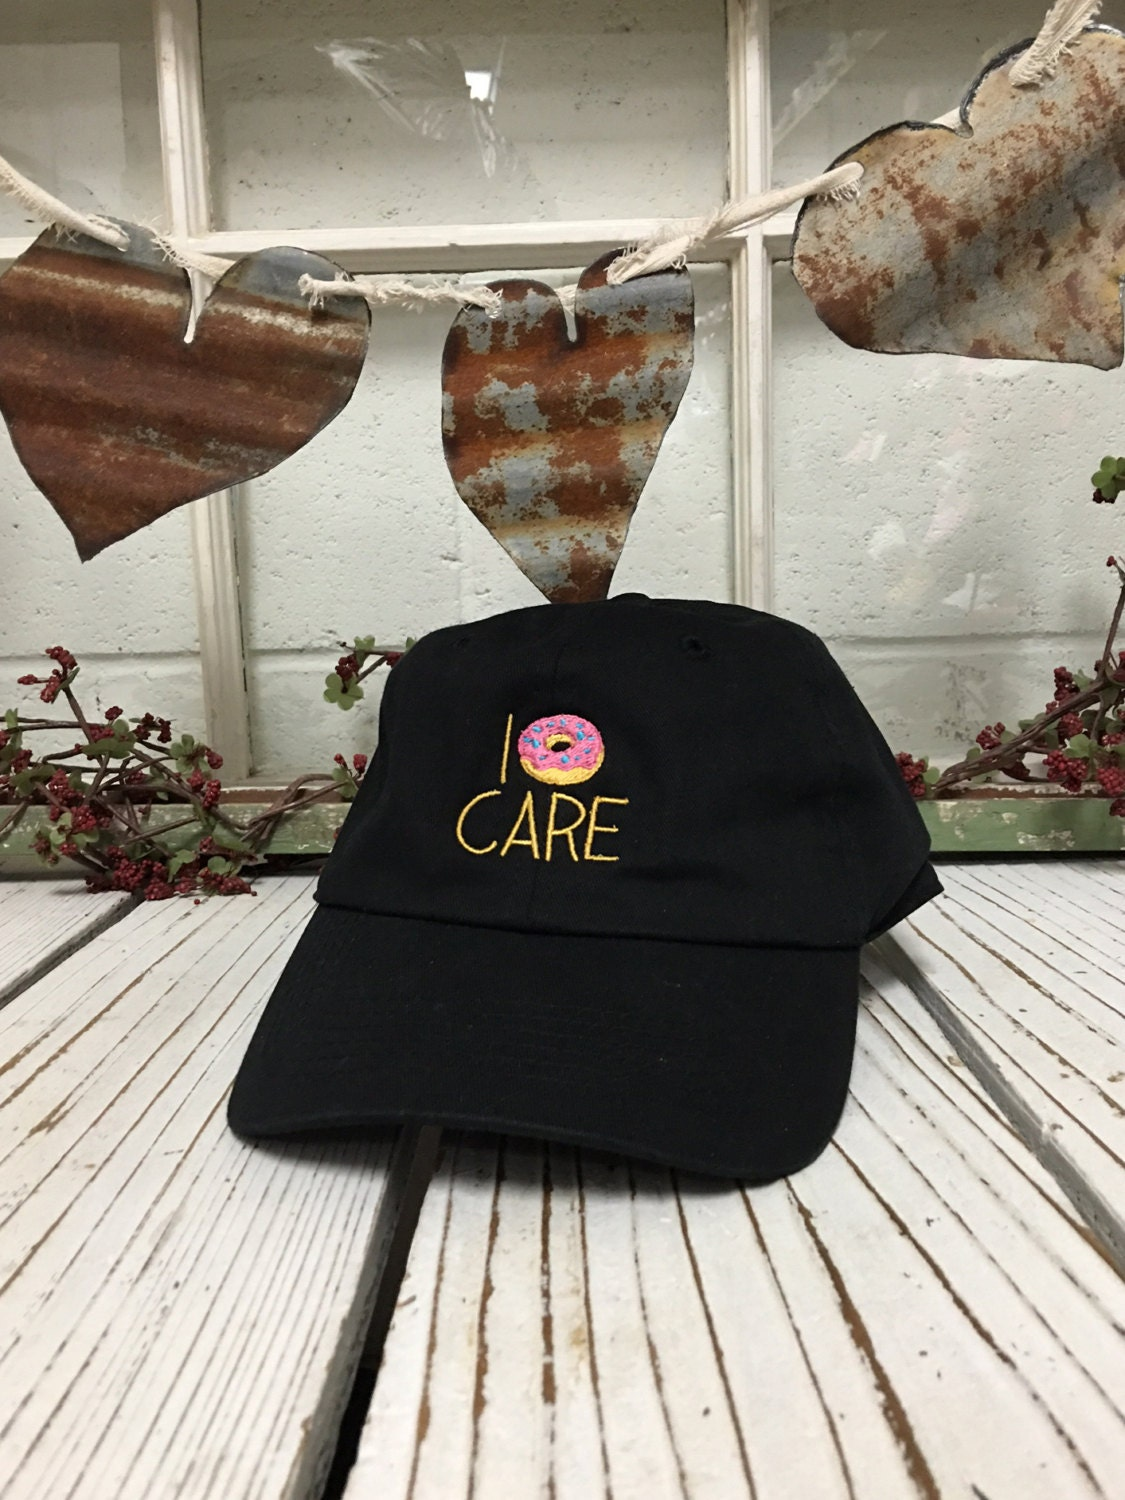 I Donut Care Embroidered Baseball Cap Low Profile Curved Bill